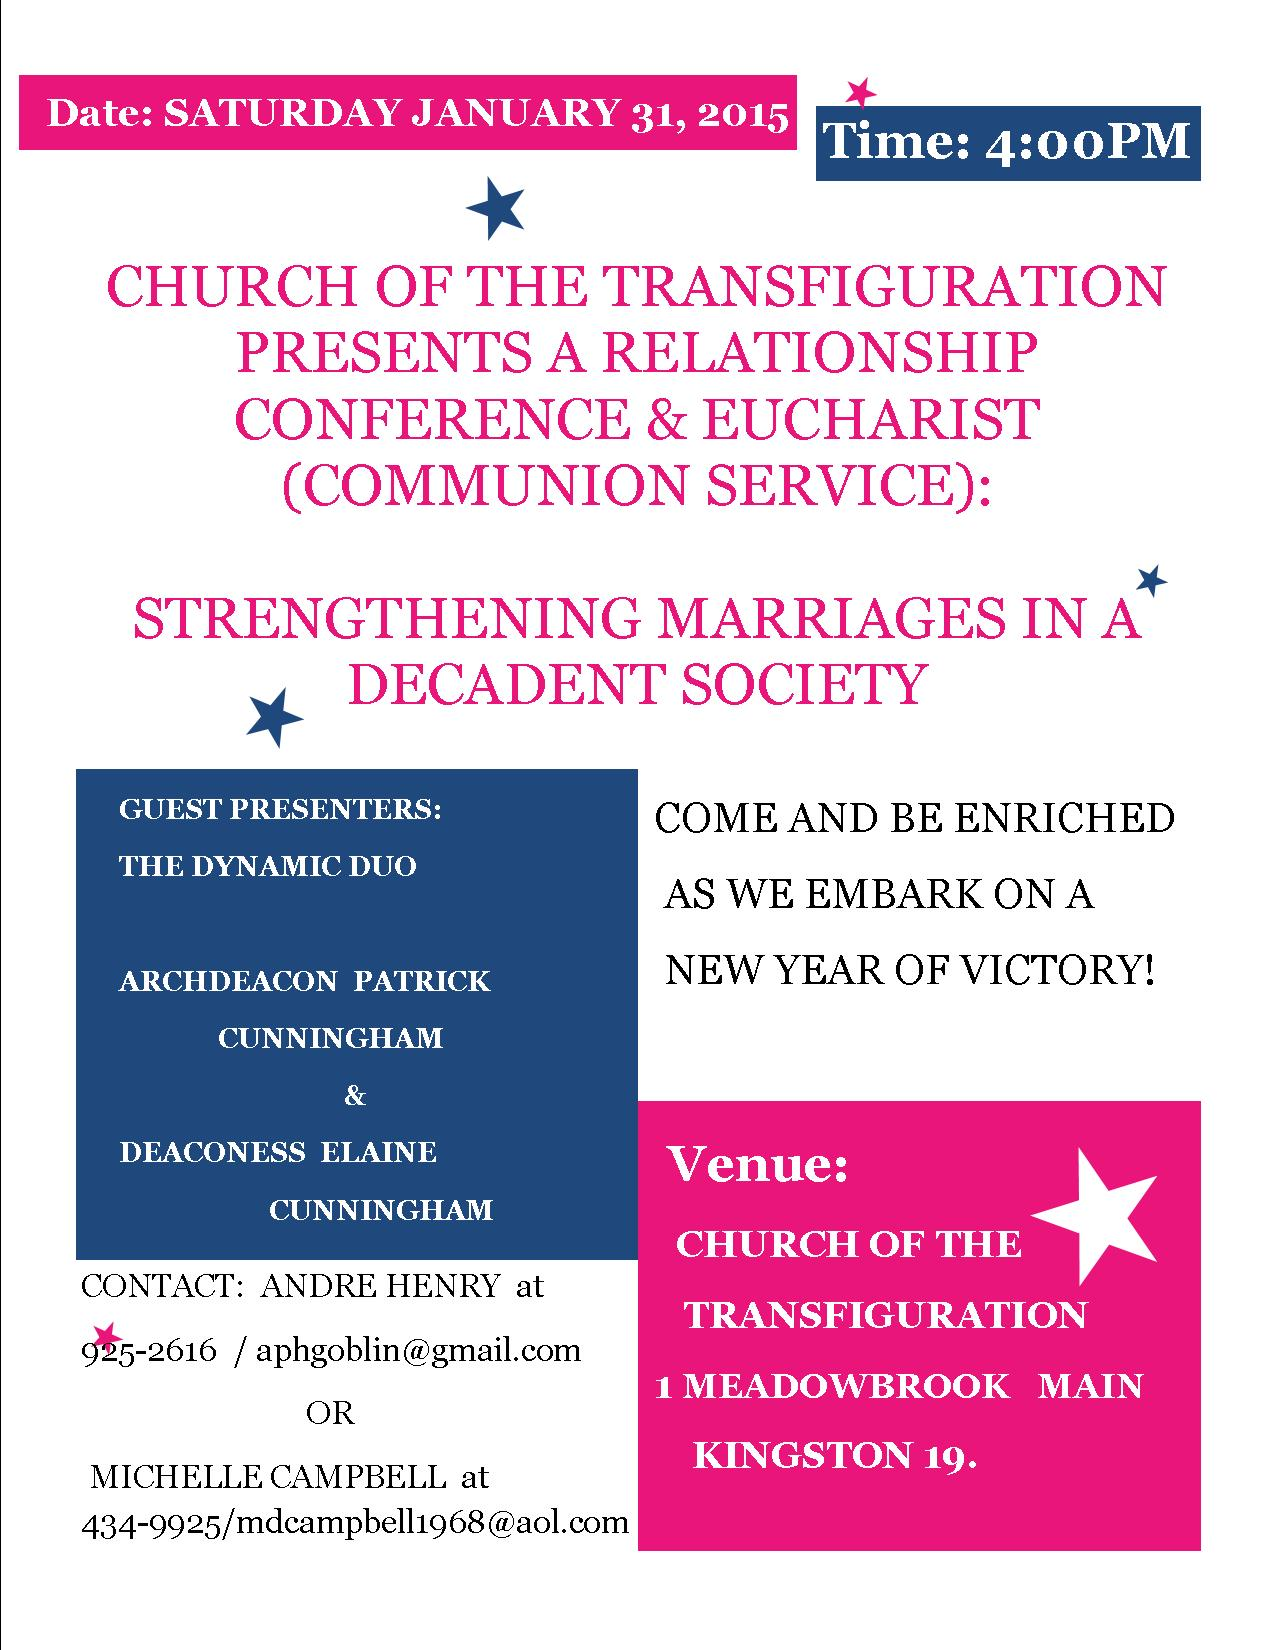 Relationship Conference & Eucharist